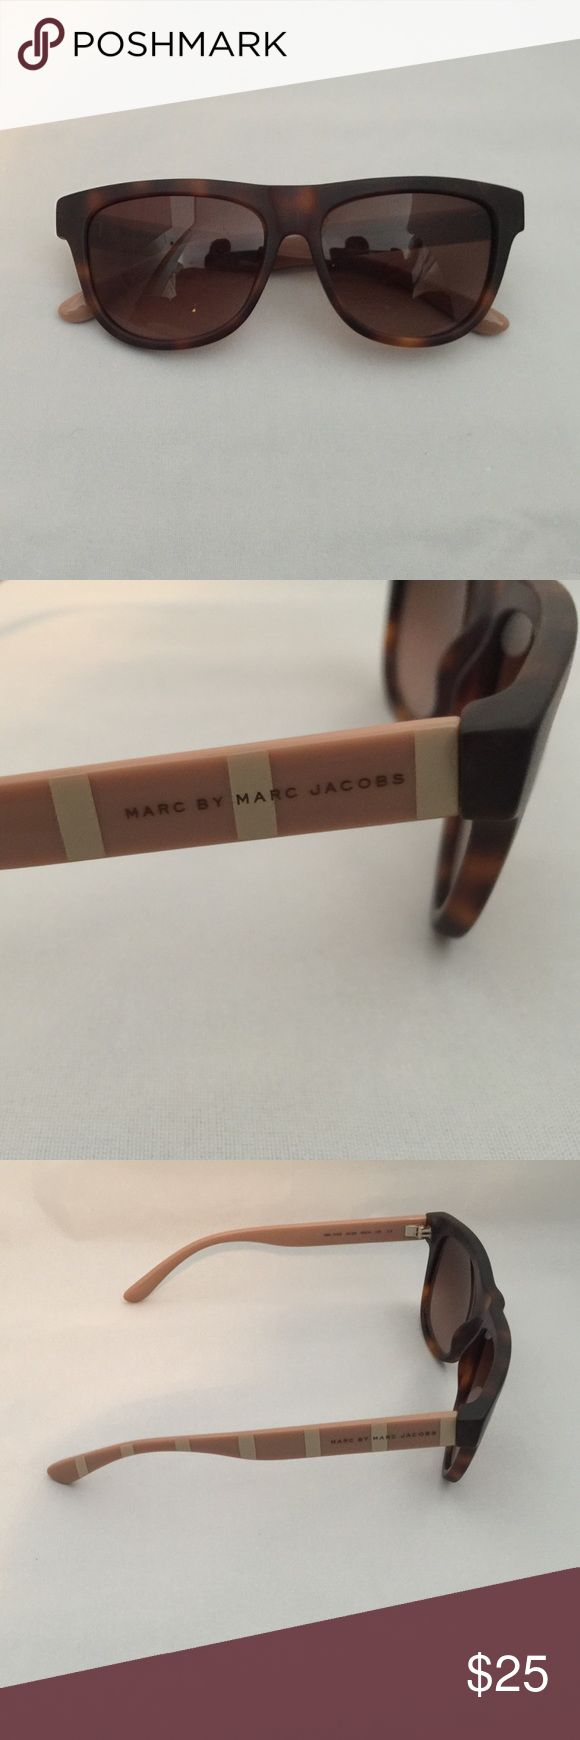 Marc by Marc Jacobs tortoise sunglasses Marc by Marc Jacobs tortoise wayfarer frames. Striped sides with Marc by Marc Jacobs on the side. Never been worn. Marc by Marc Jacobs Accessories Sunglasses